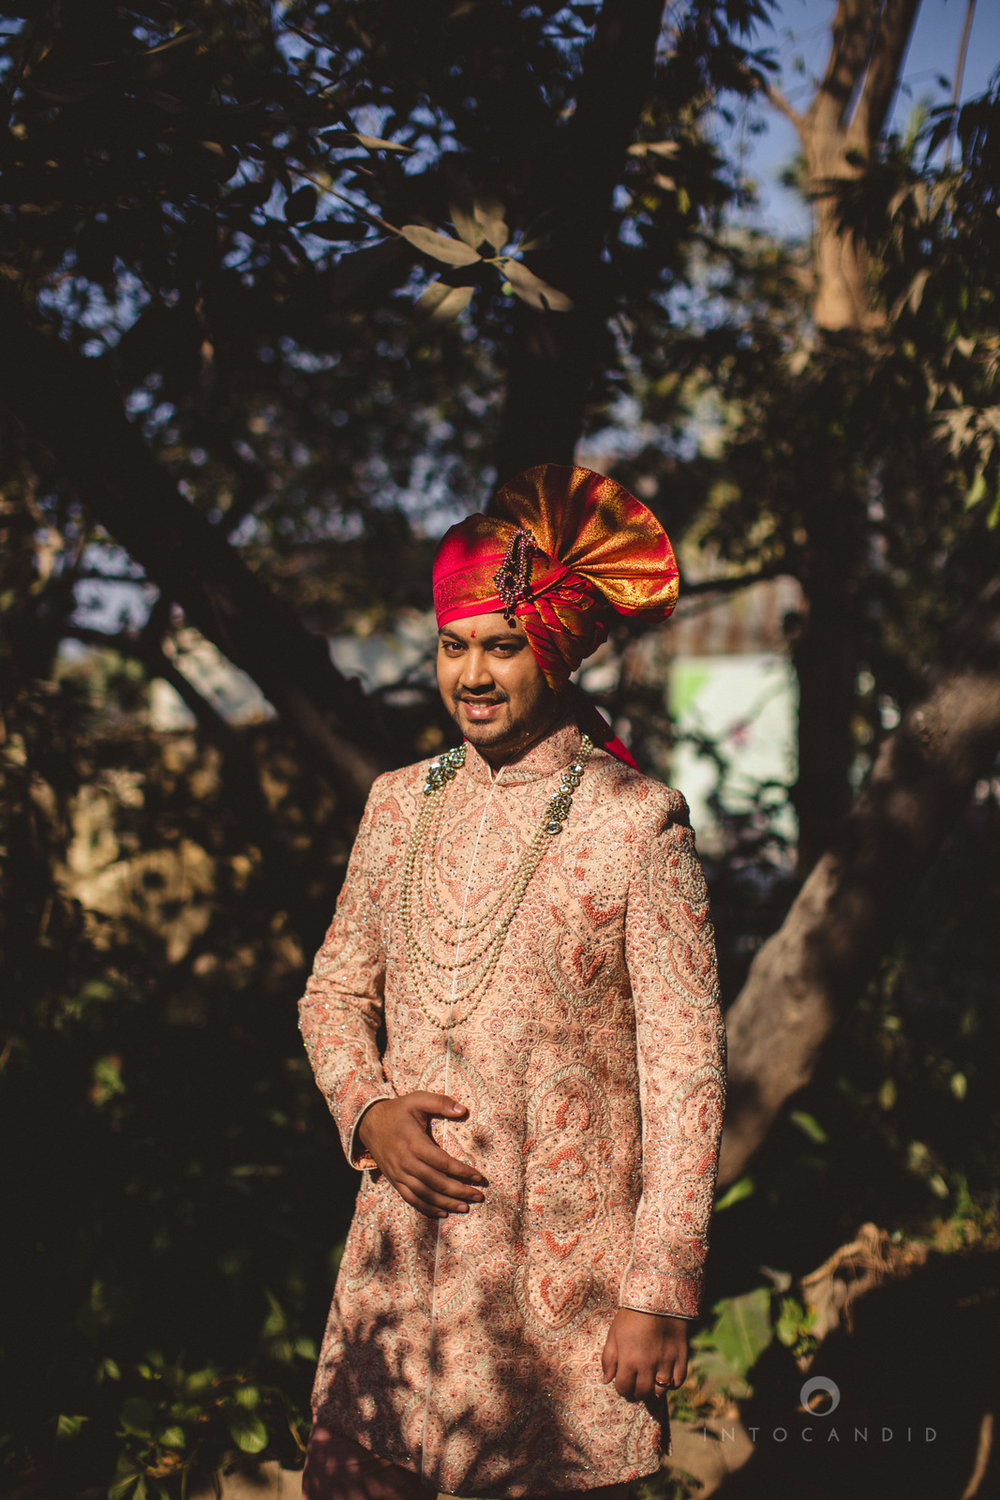 mumbai-gujarati-wedding-photographer-intocandid-photography-tg-025.jpg